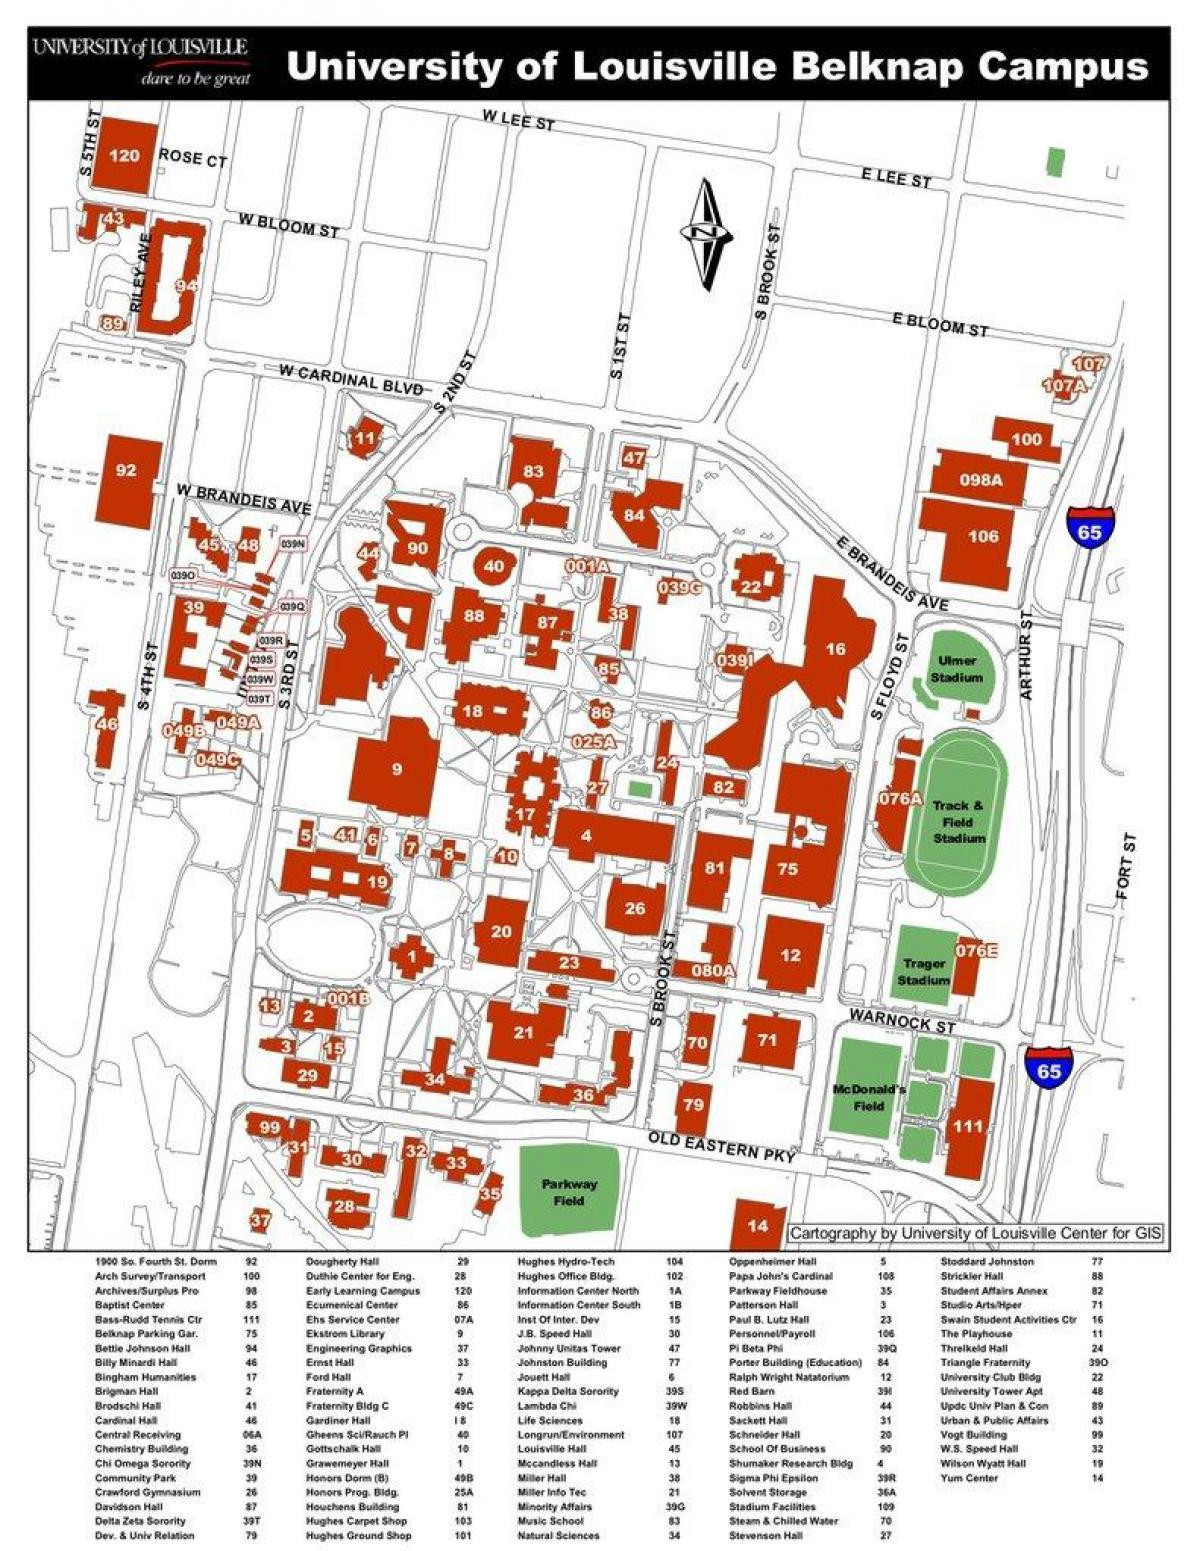 Beautiful Ucf Campus Map Business Card Logo Design Etc Beautiful Ucf Campus Map Orlando FL Student Housing Student Apartments map